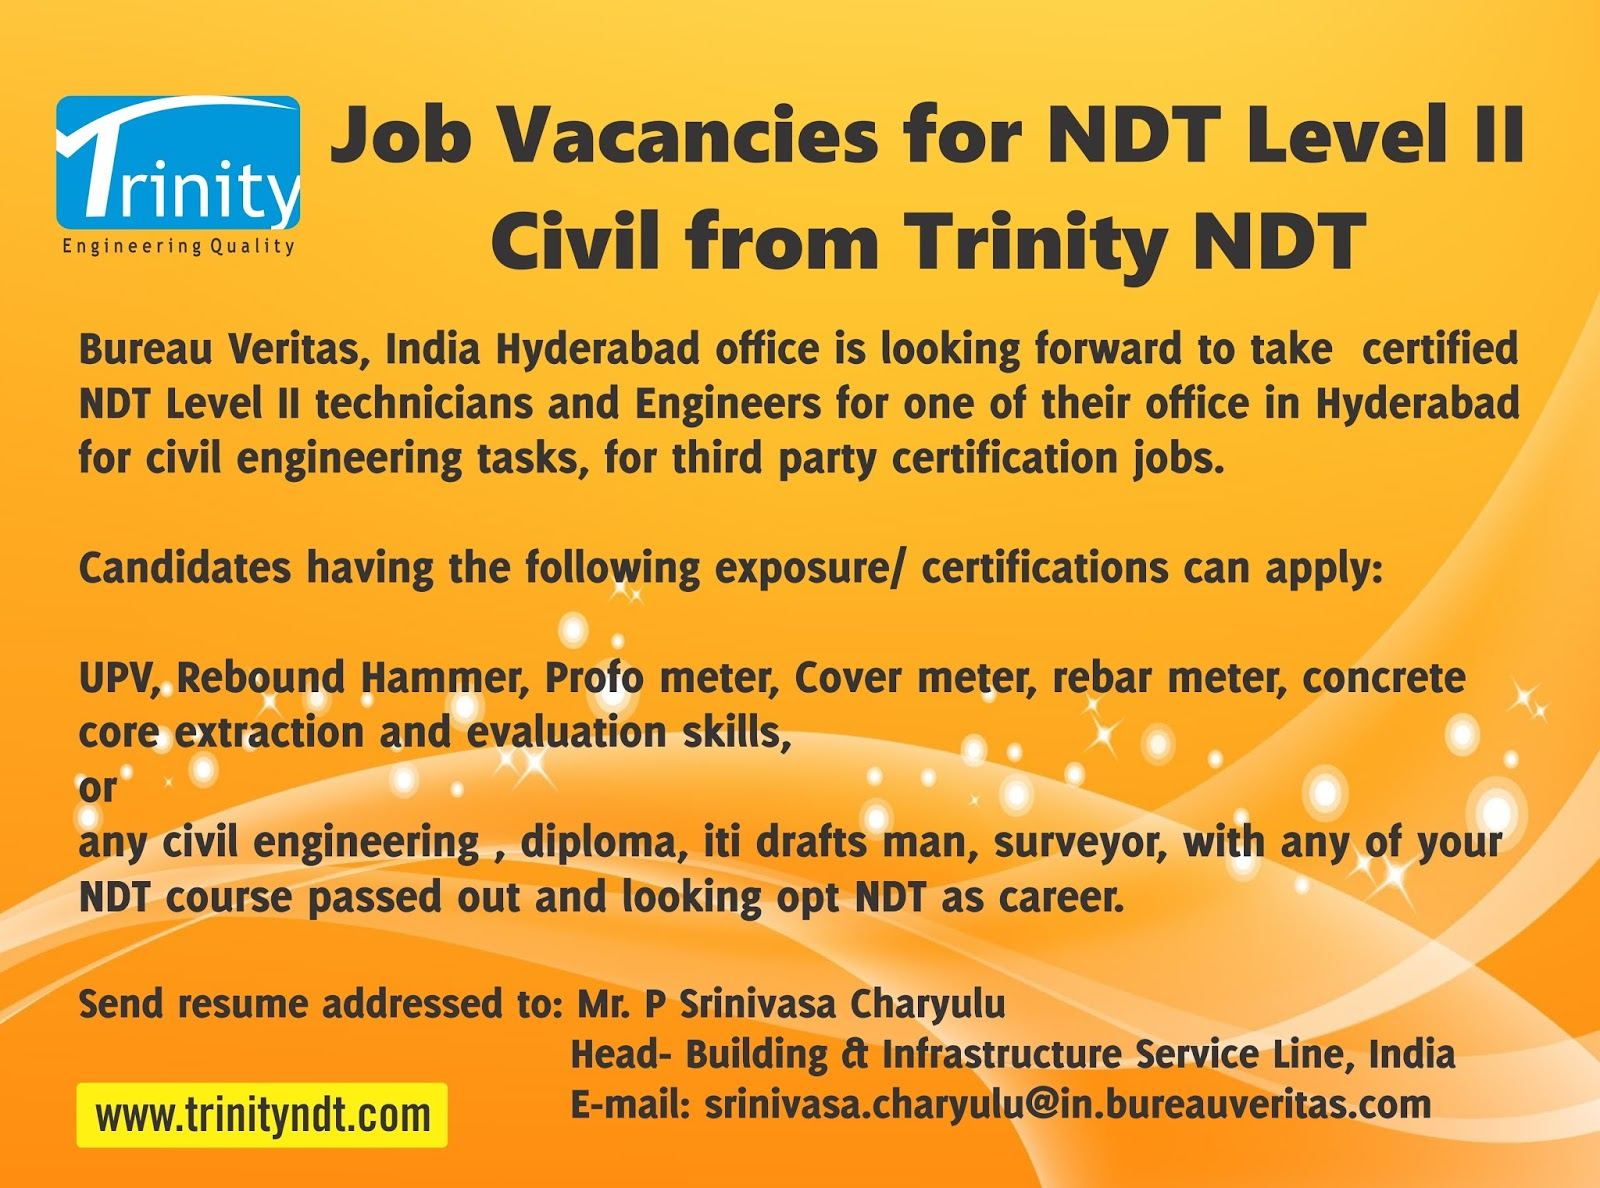 Nabl ndt labs ndt welding inspection training chennai mumbai job vacancies in bureau veritas in hyderabad for ndt level ii civil engineers certified by trinity institute of ndt technology 1betcityfo Choice Image